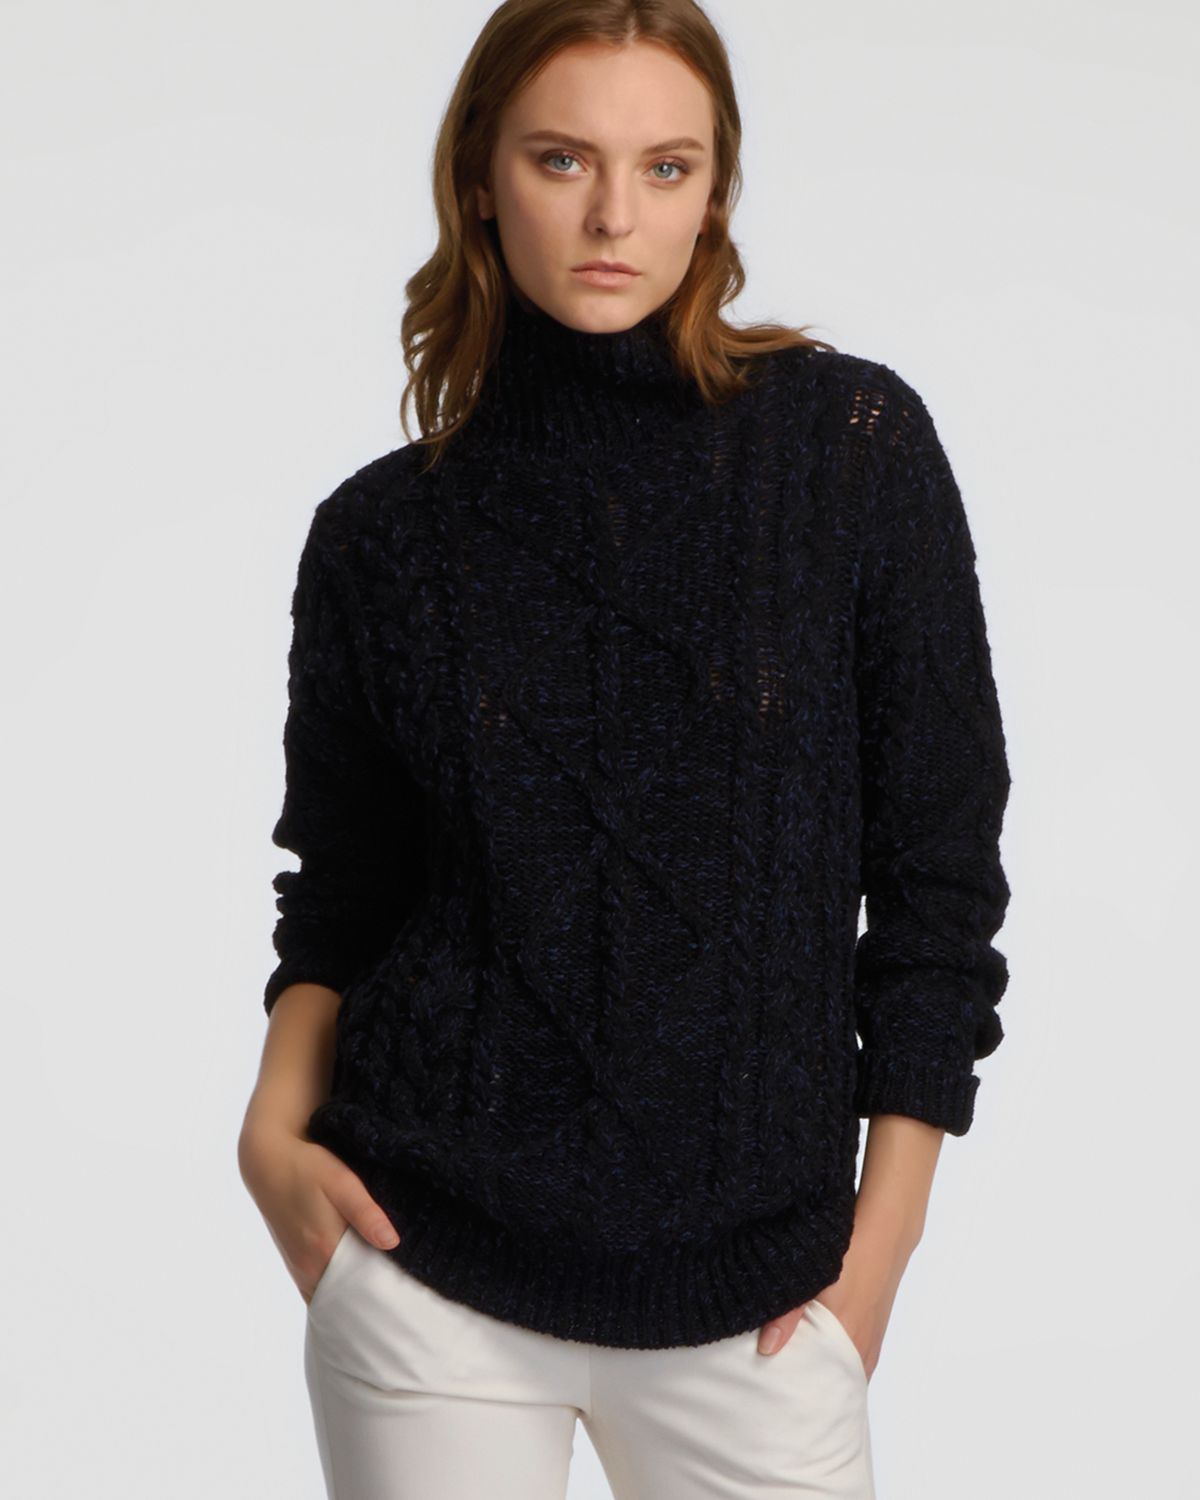 Halston Chunky Cable Turtleneck Sweater in Black | Lyst